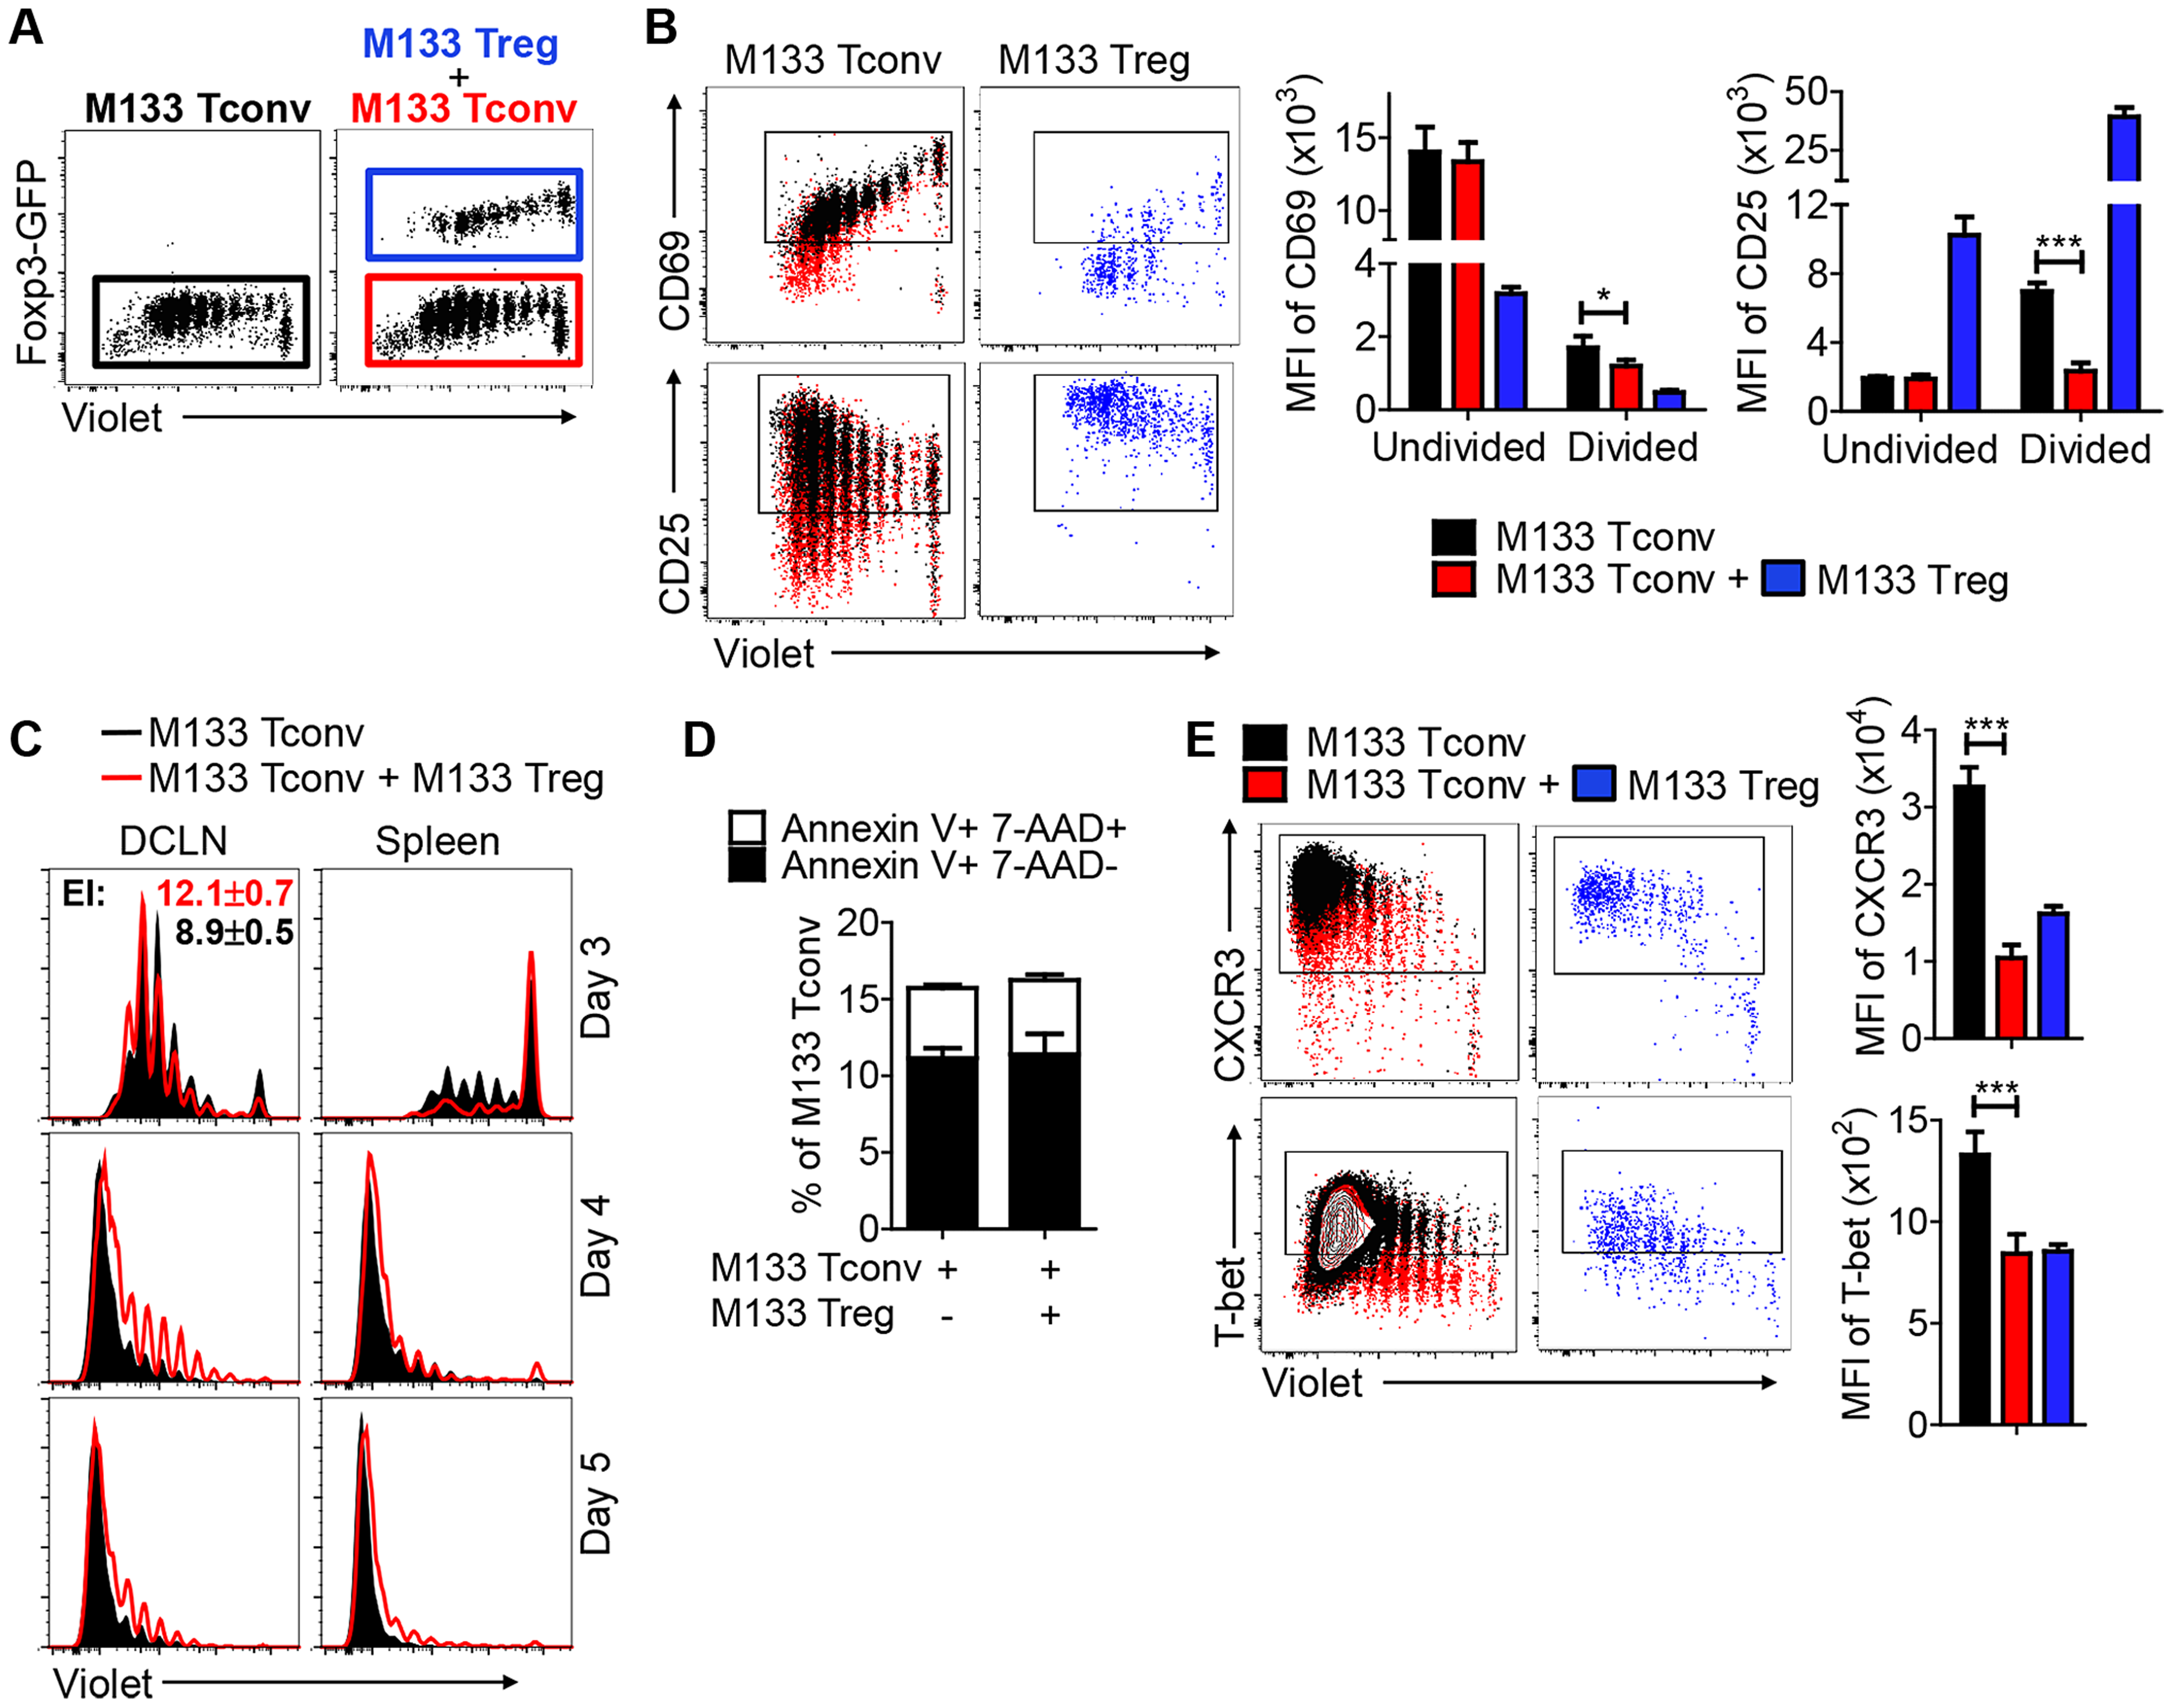 M133 Tregs inhibit M133 Tconv proliferation in, and egress from, the DCLN.